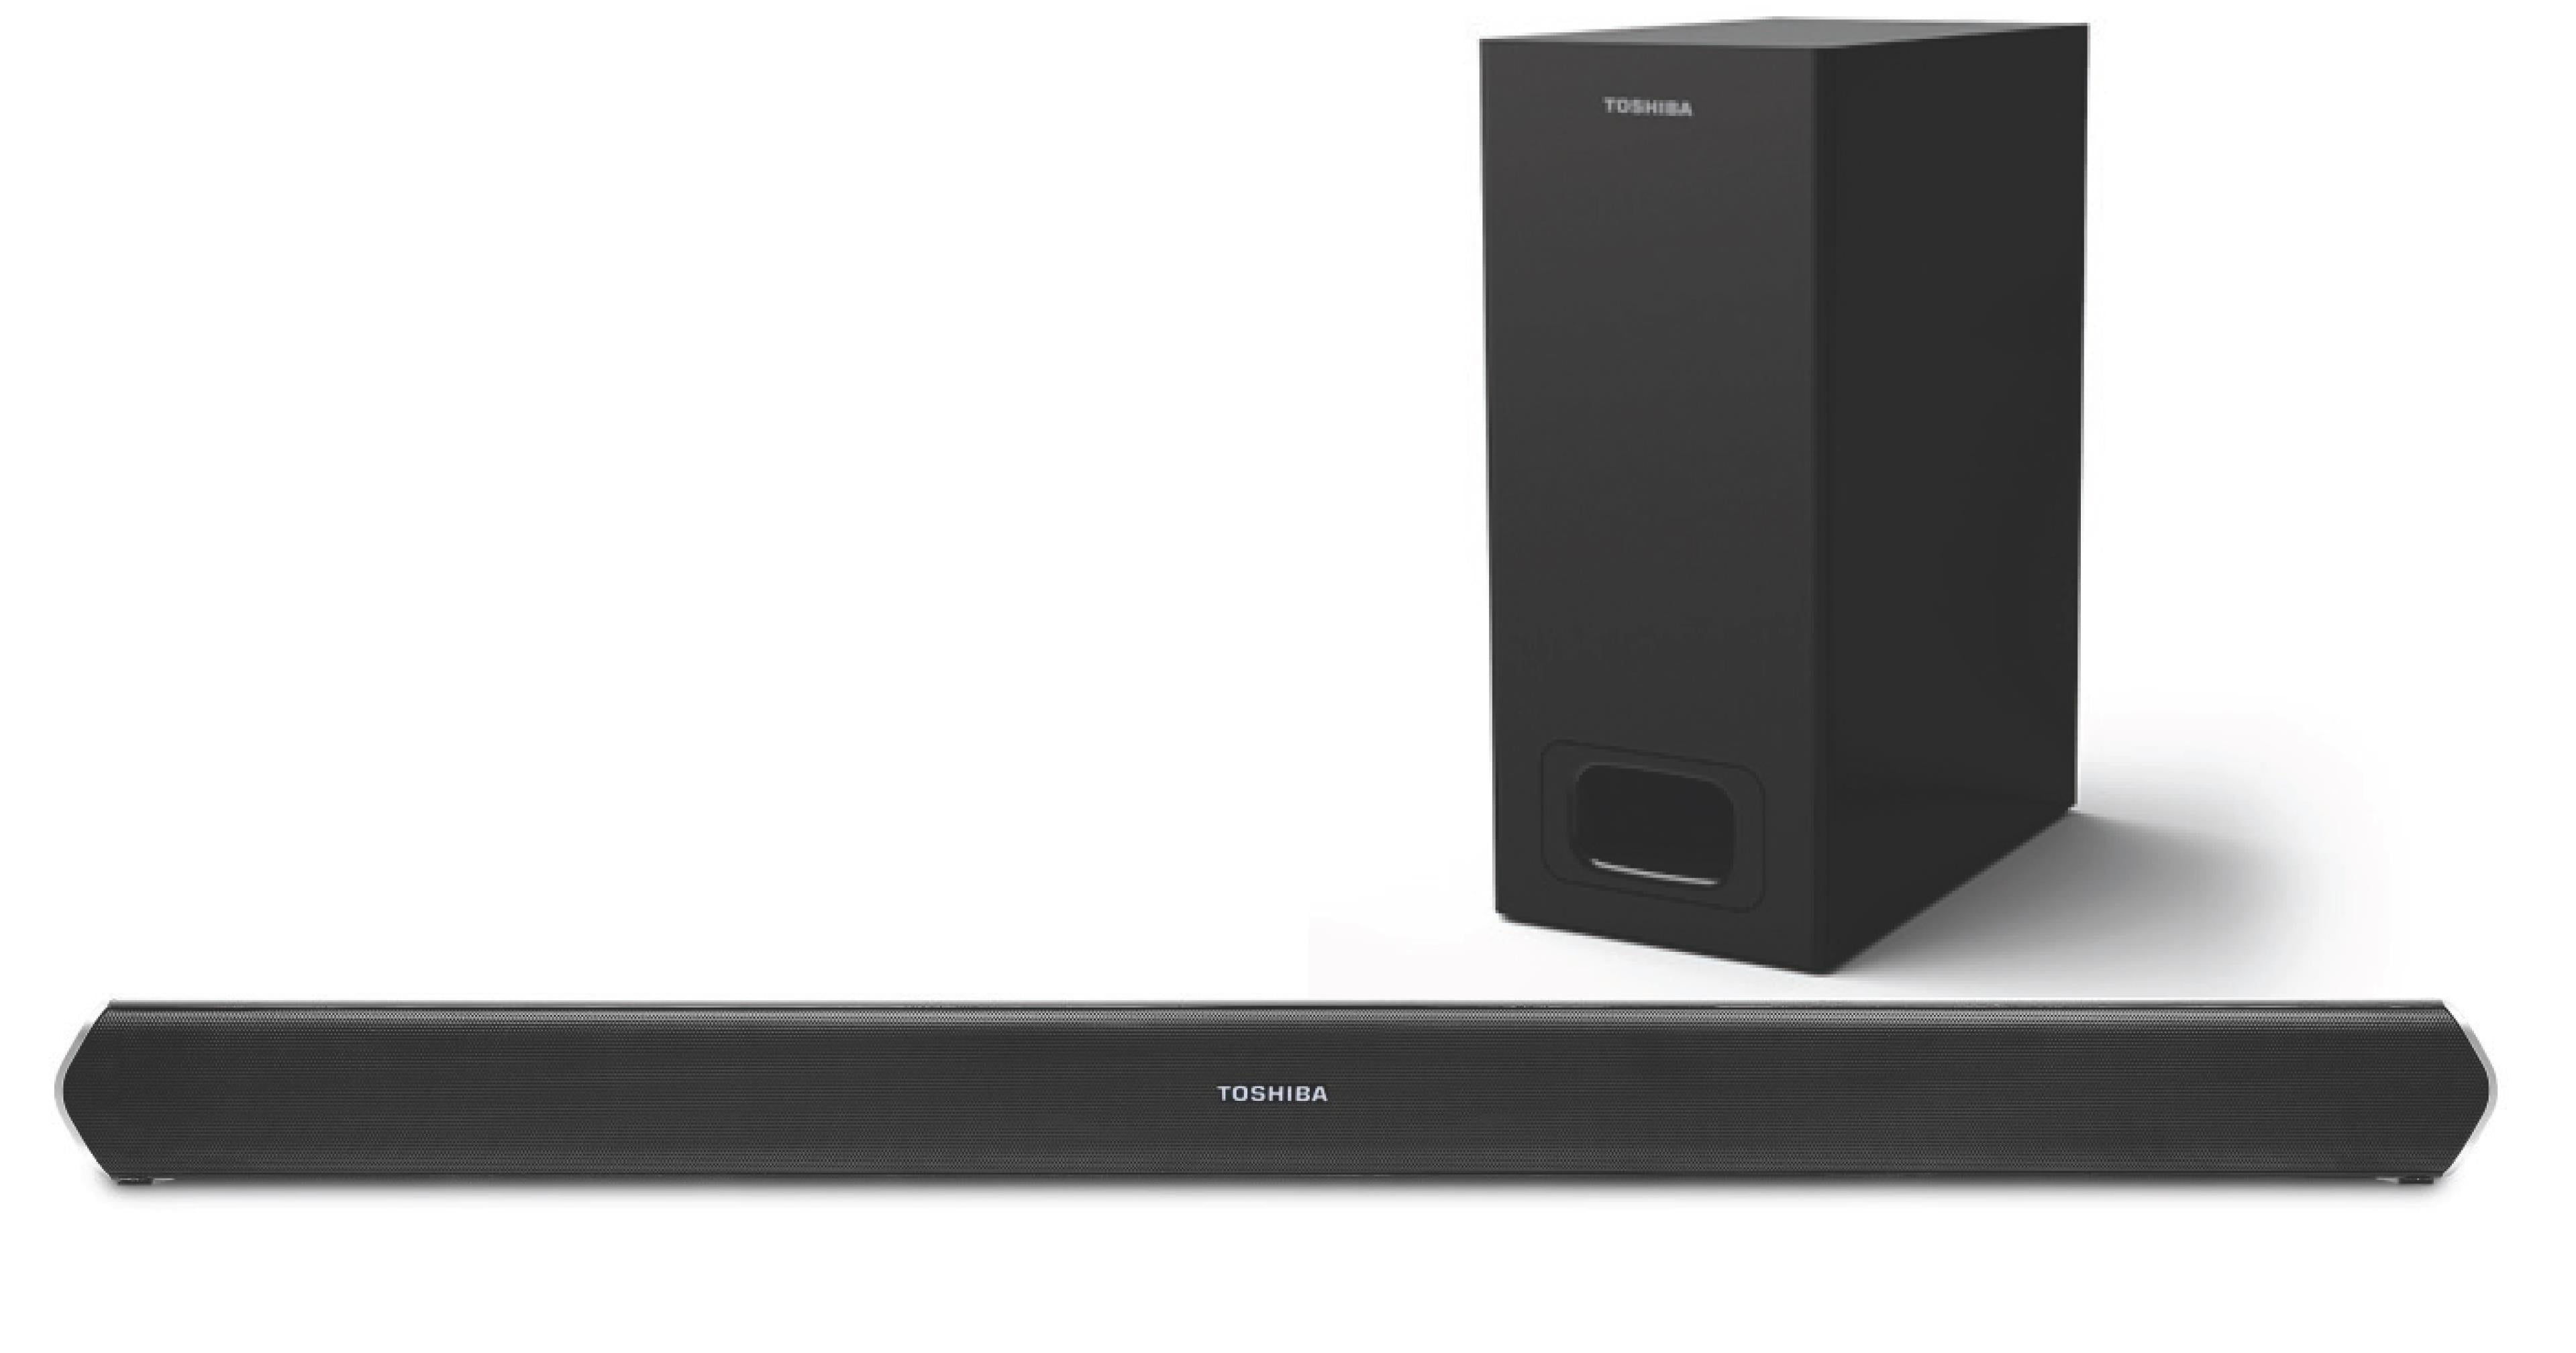 Toshiba 2.1 Channel Bluetooth Sound Bar Speaker